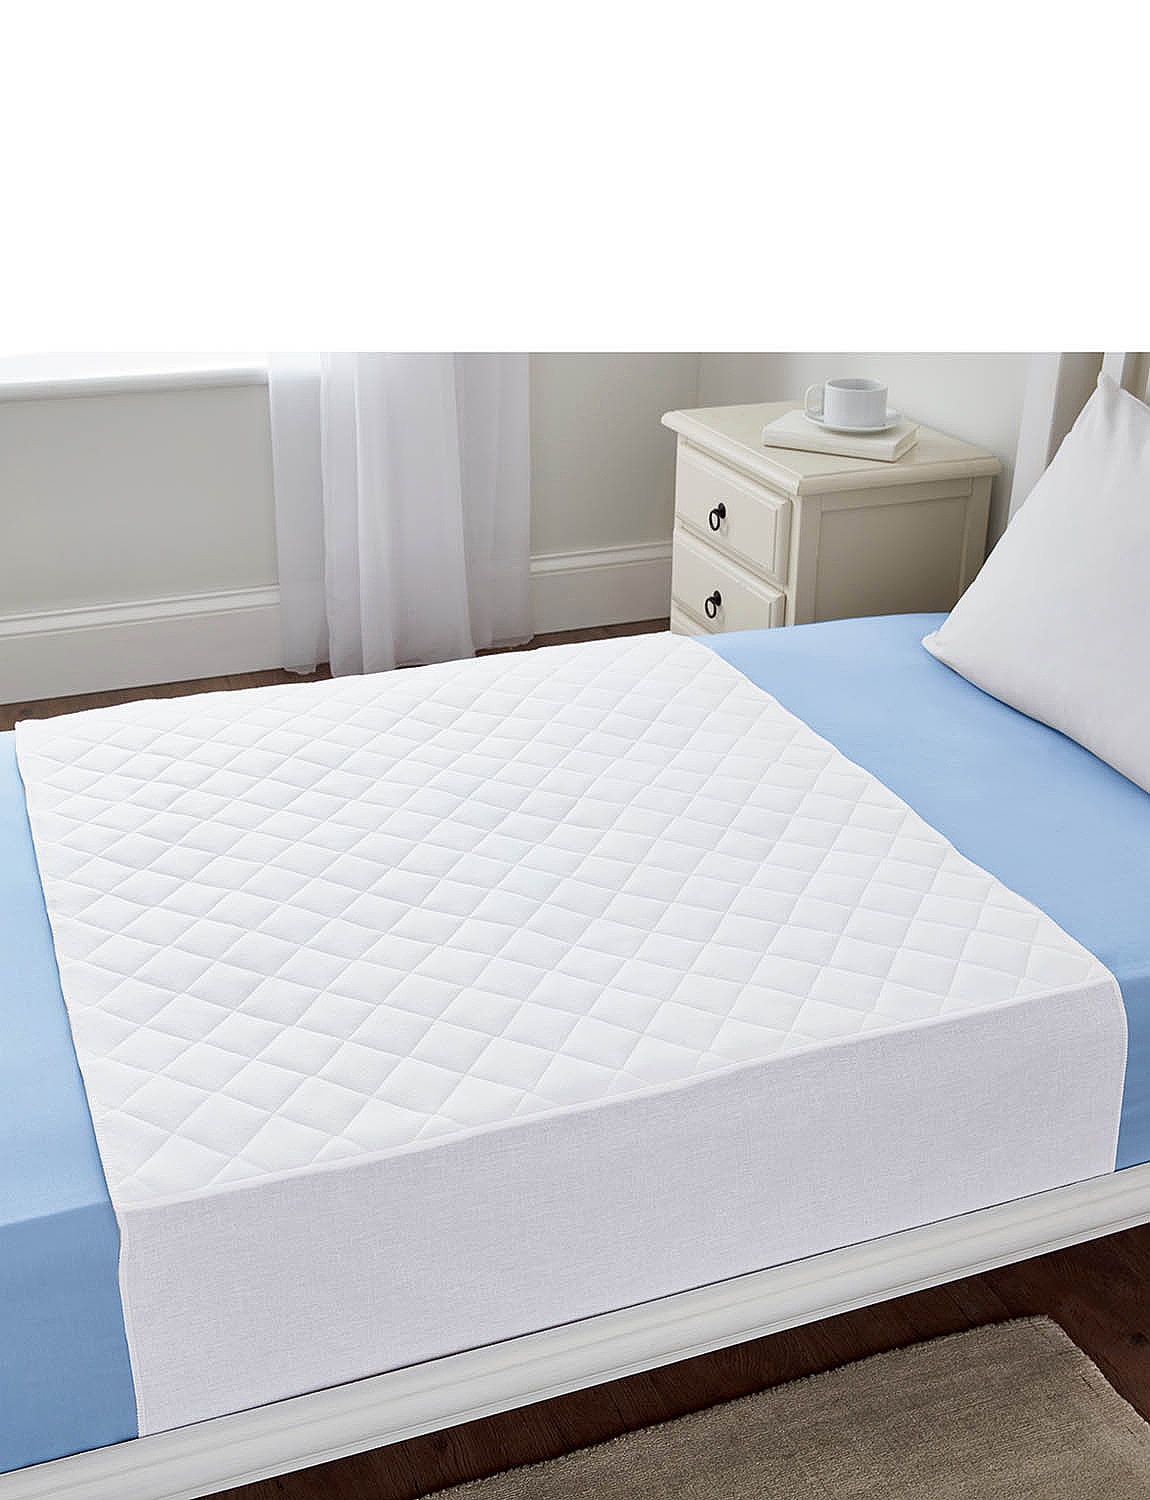 Discreet Quilted Waterproof Protector  - White